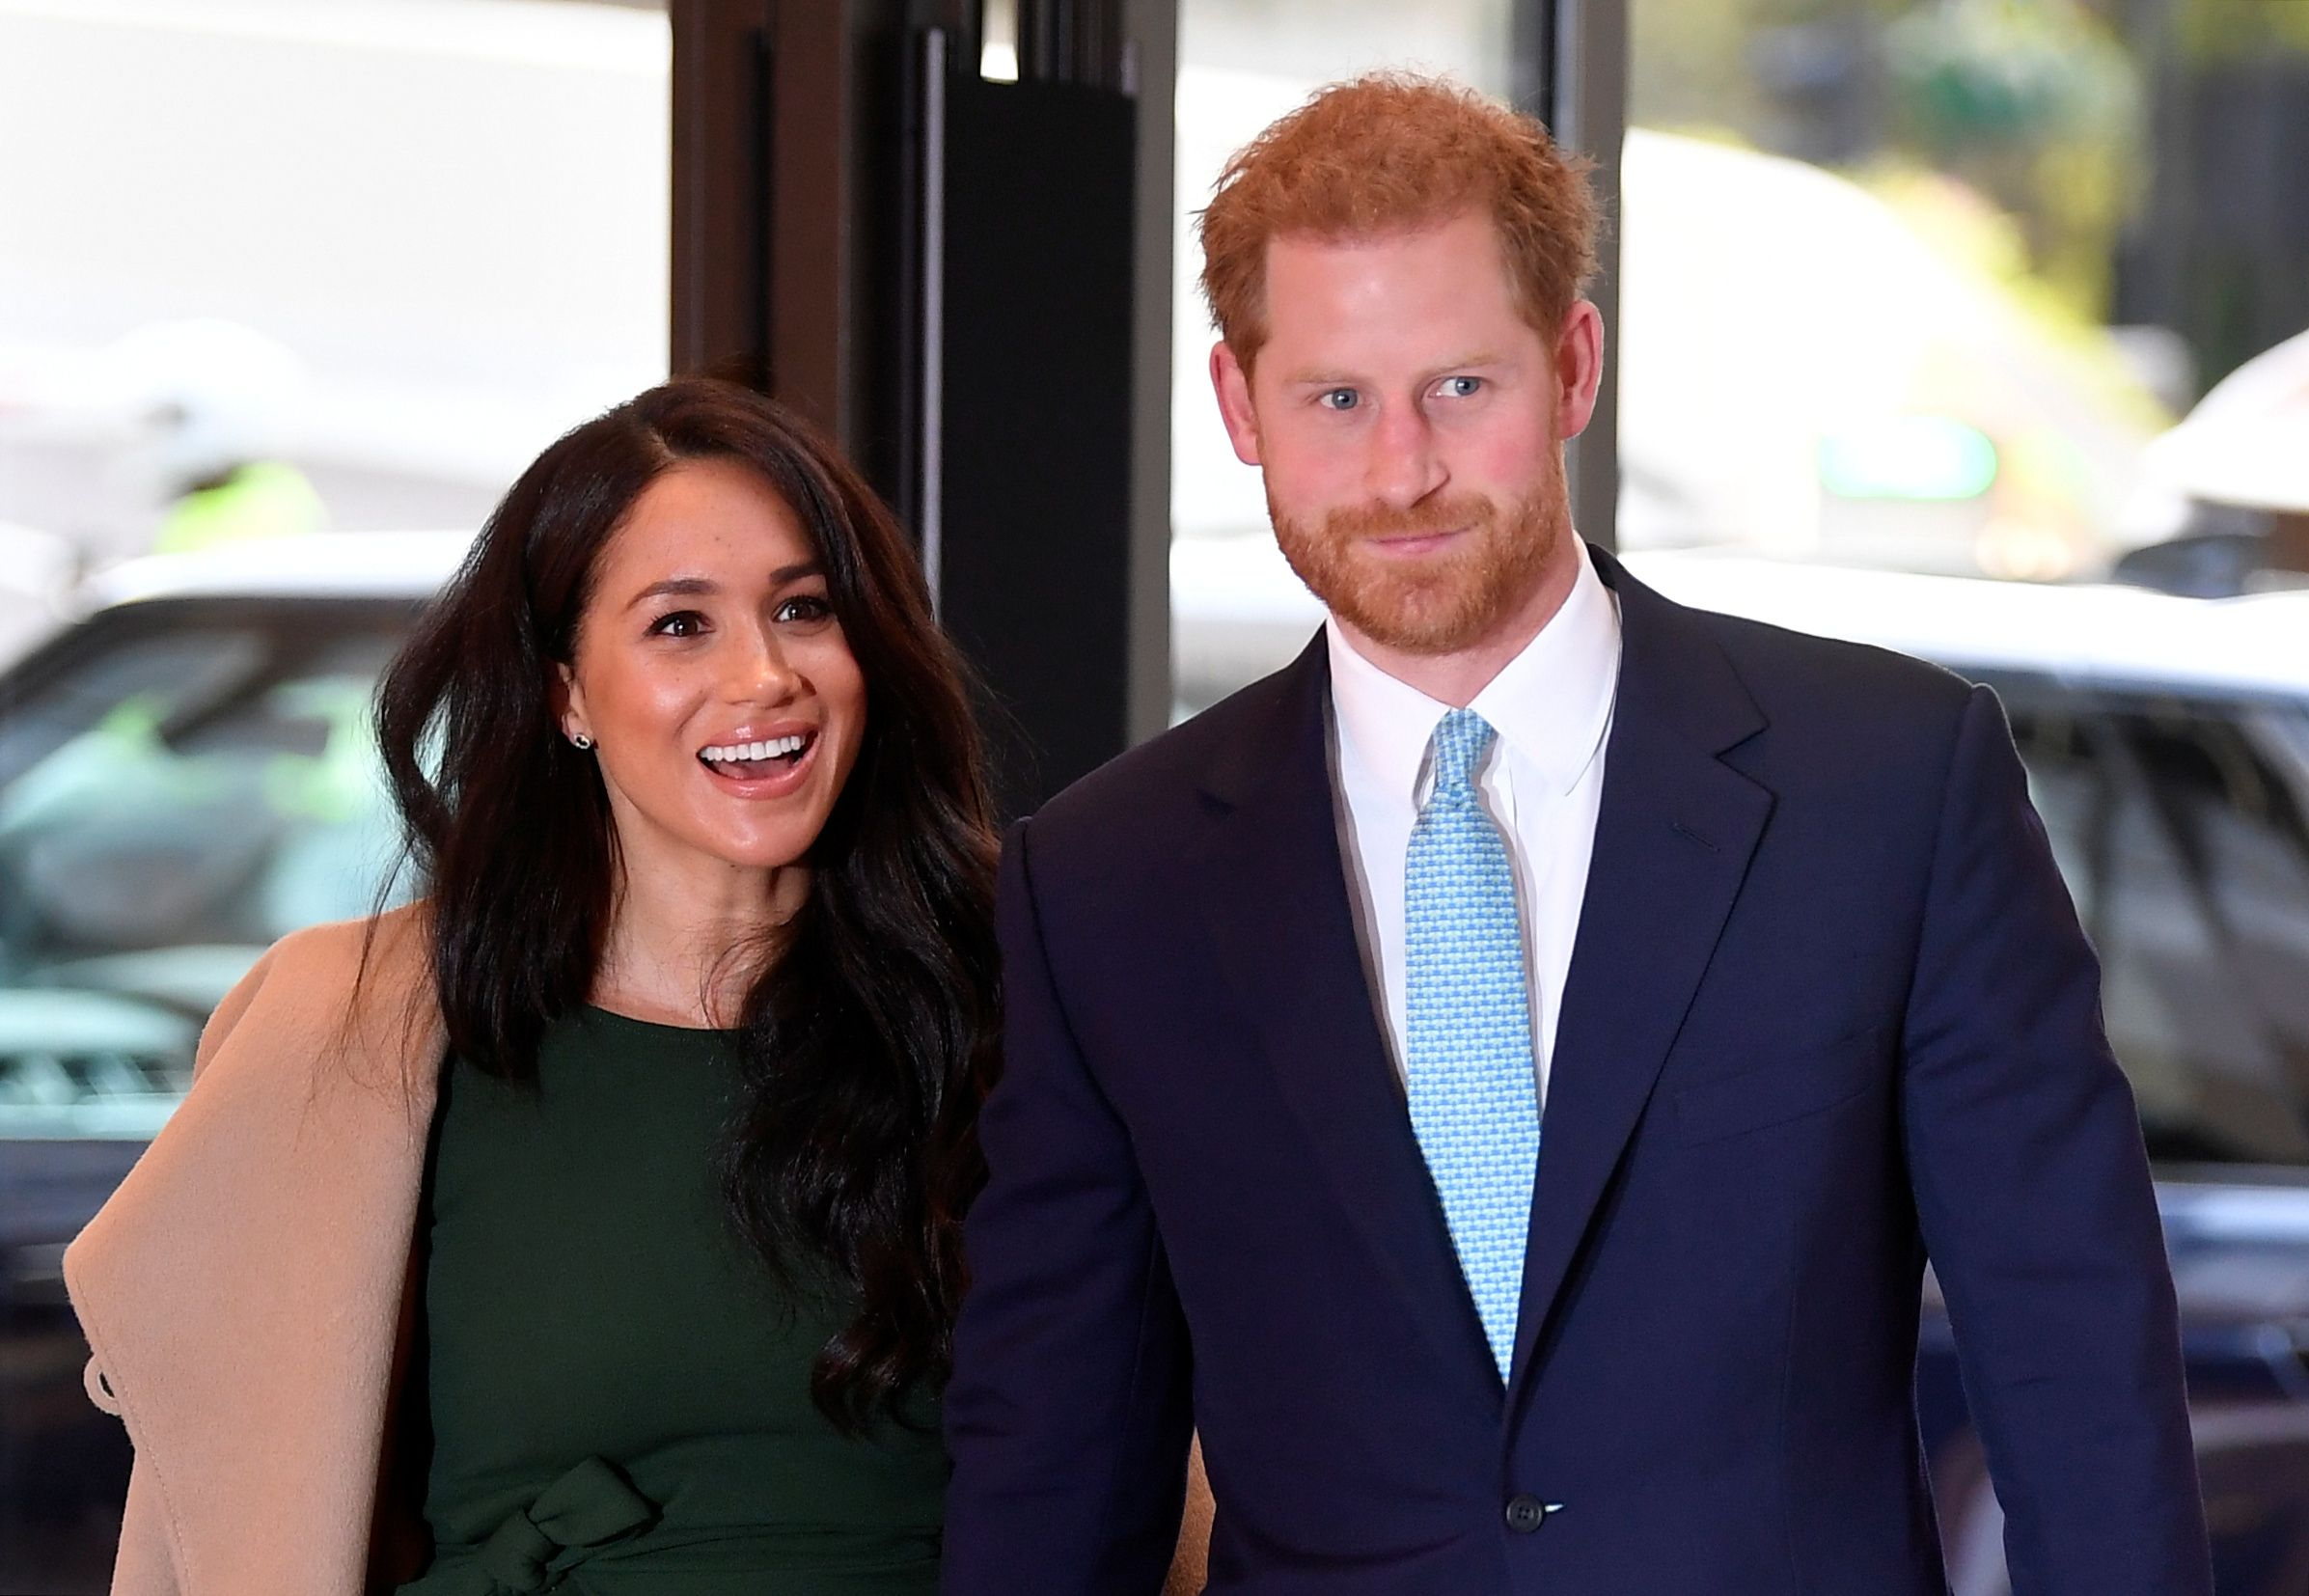 Meghan Markle and Prince Harry smiling next to each other